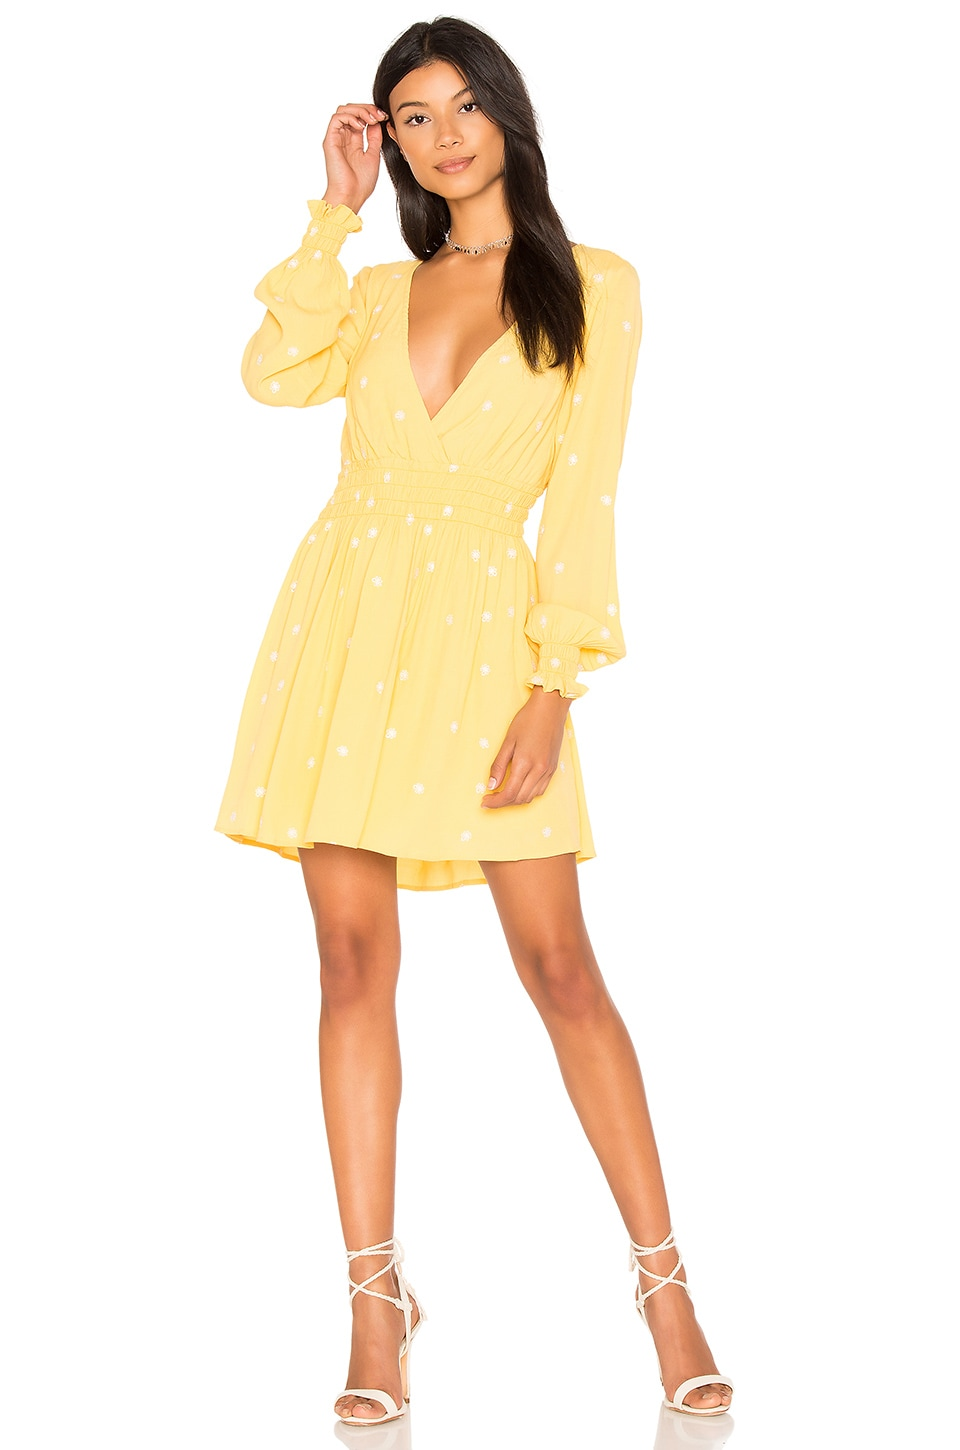 Chiquita Long Sleeve Dress